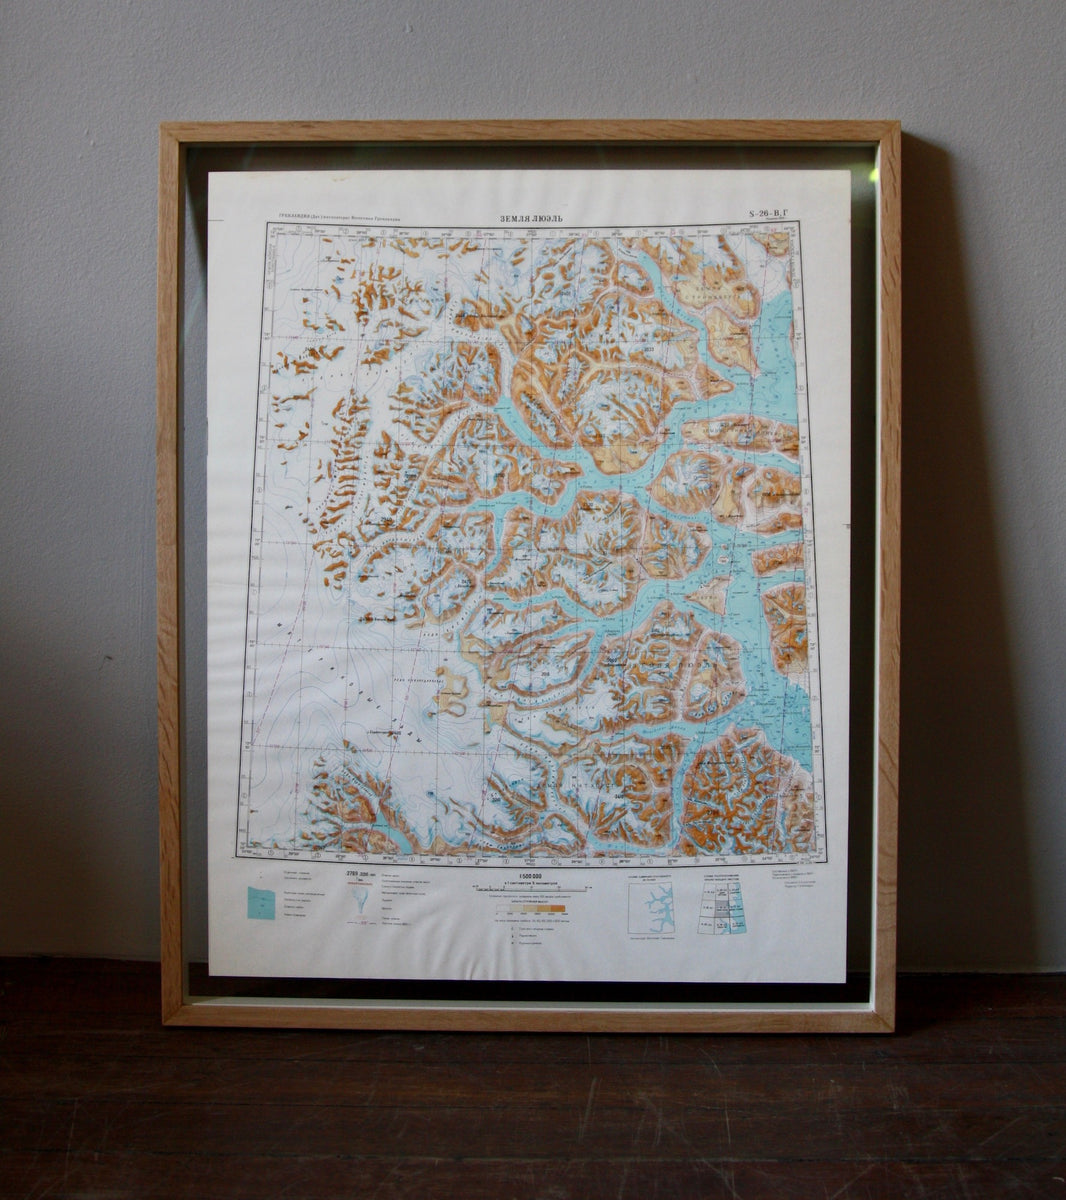 1960s Soviet Maps of Greenland - Image 10